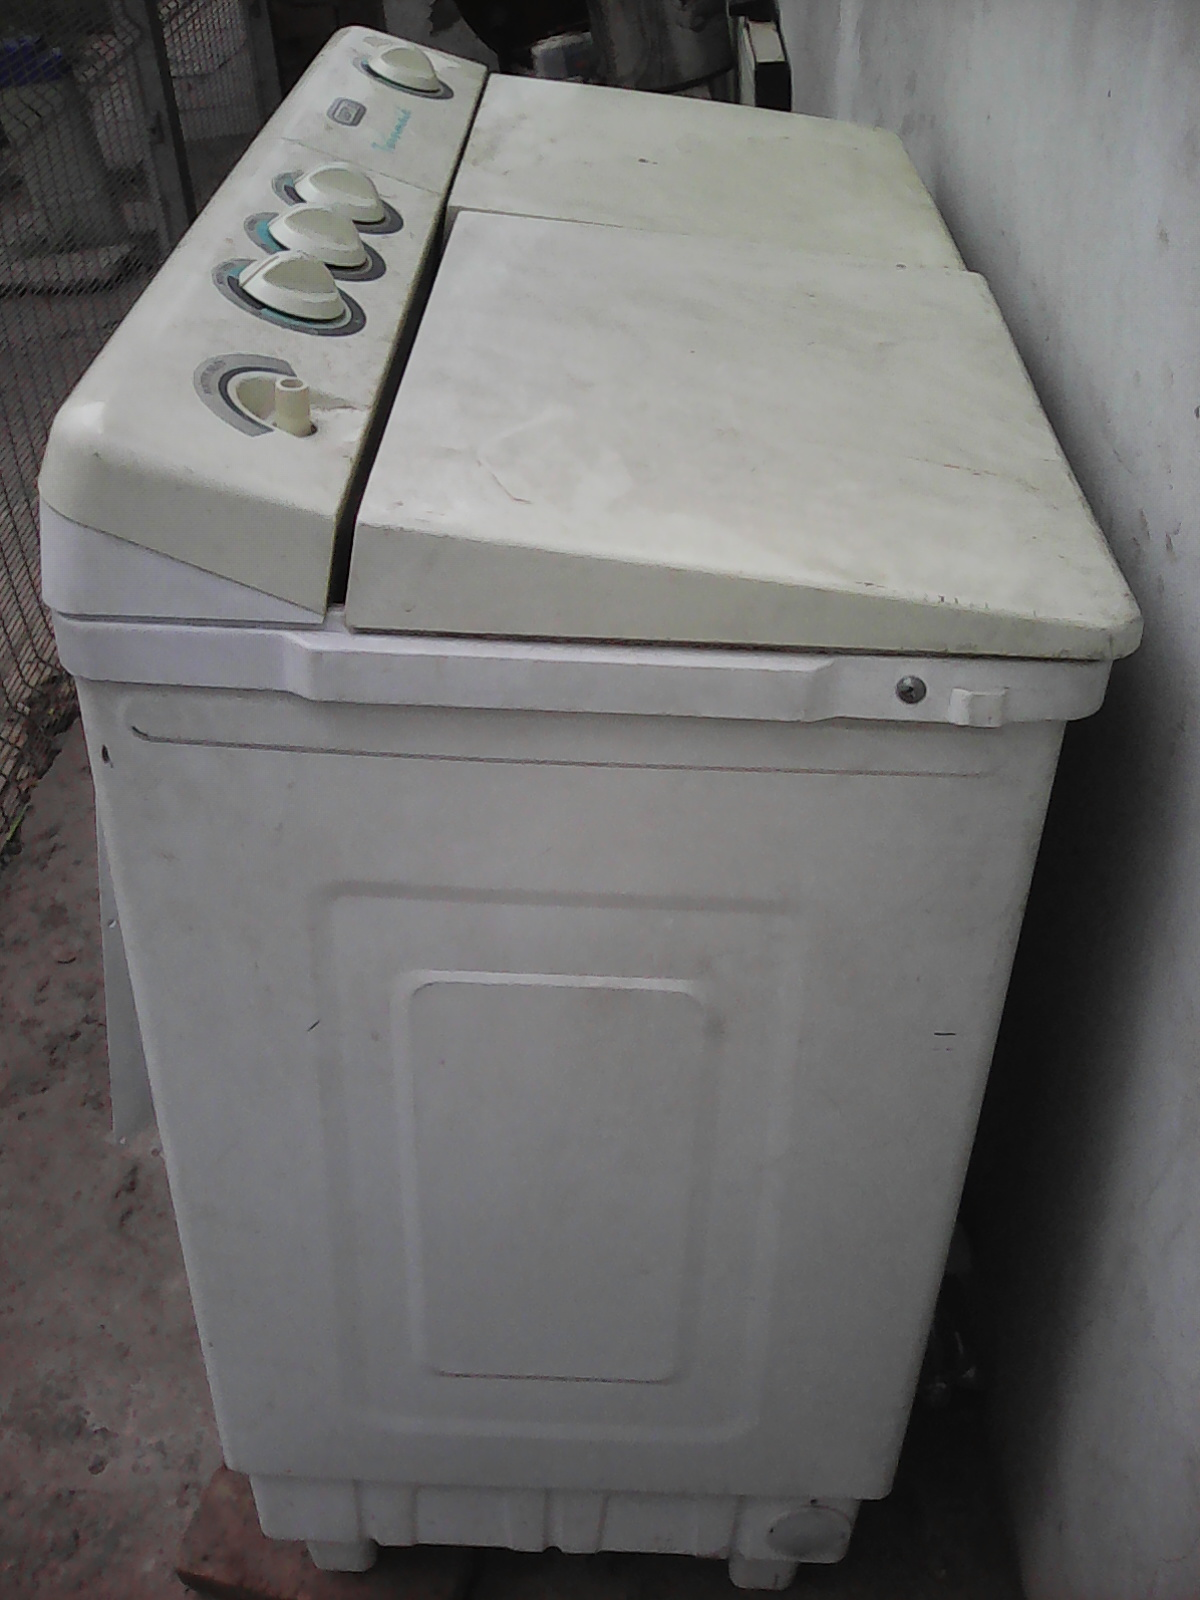 Defy Washing machine not working